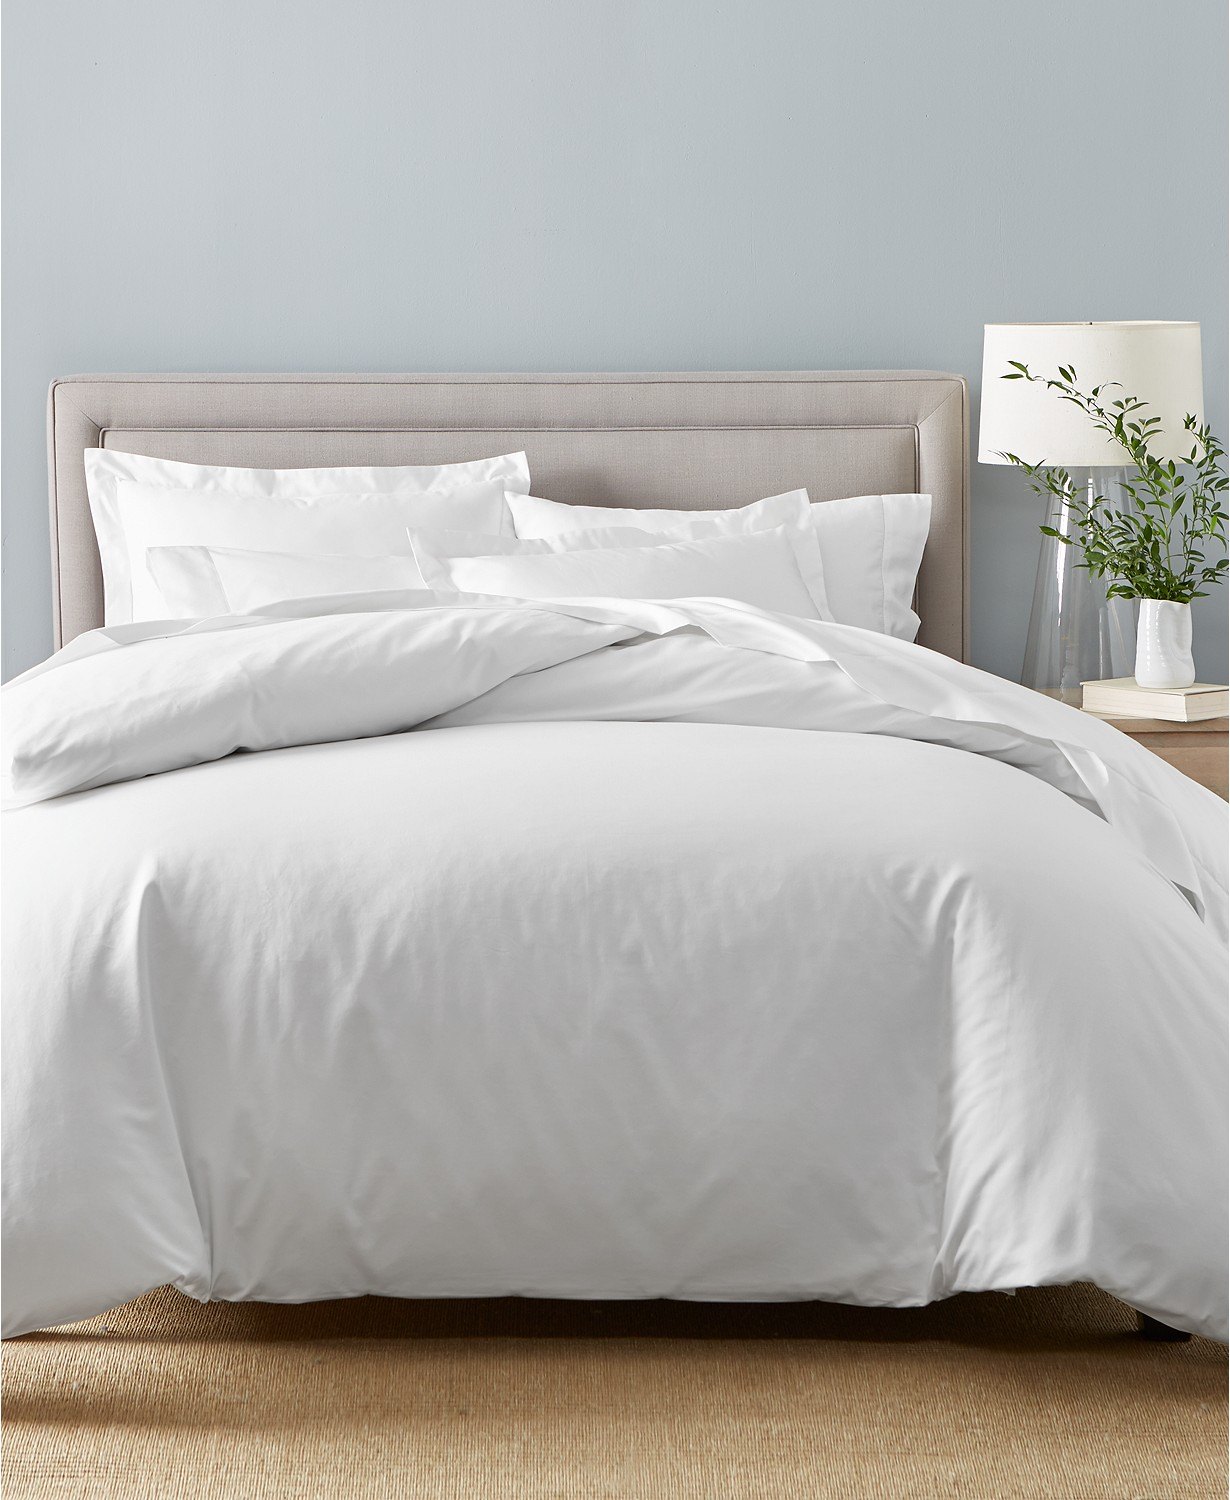 Charter Club Damask Duvet Cover 100 Supima Cotton 550 Thread Count Kalsona